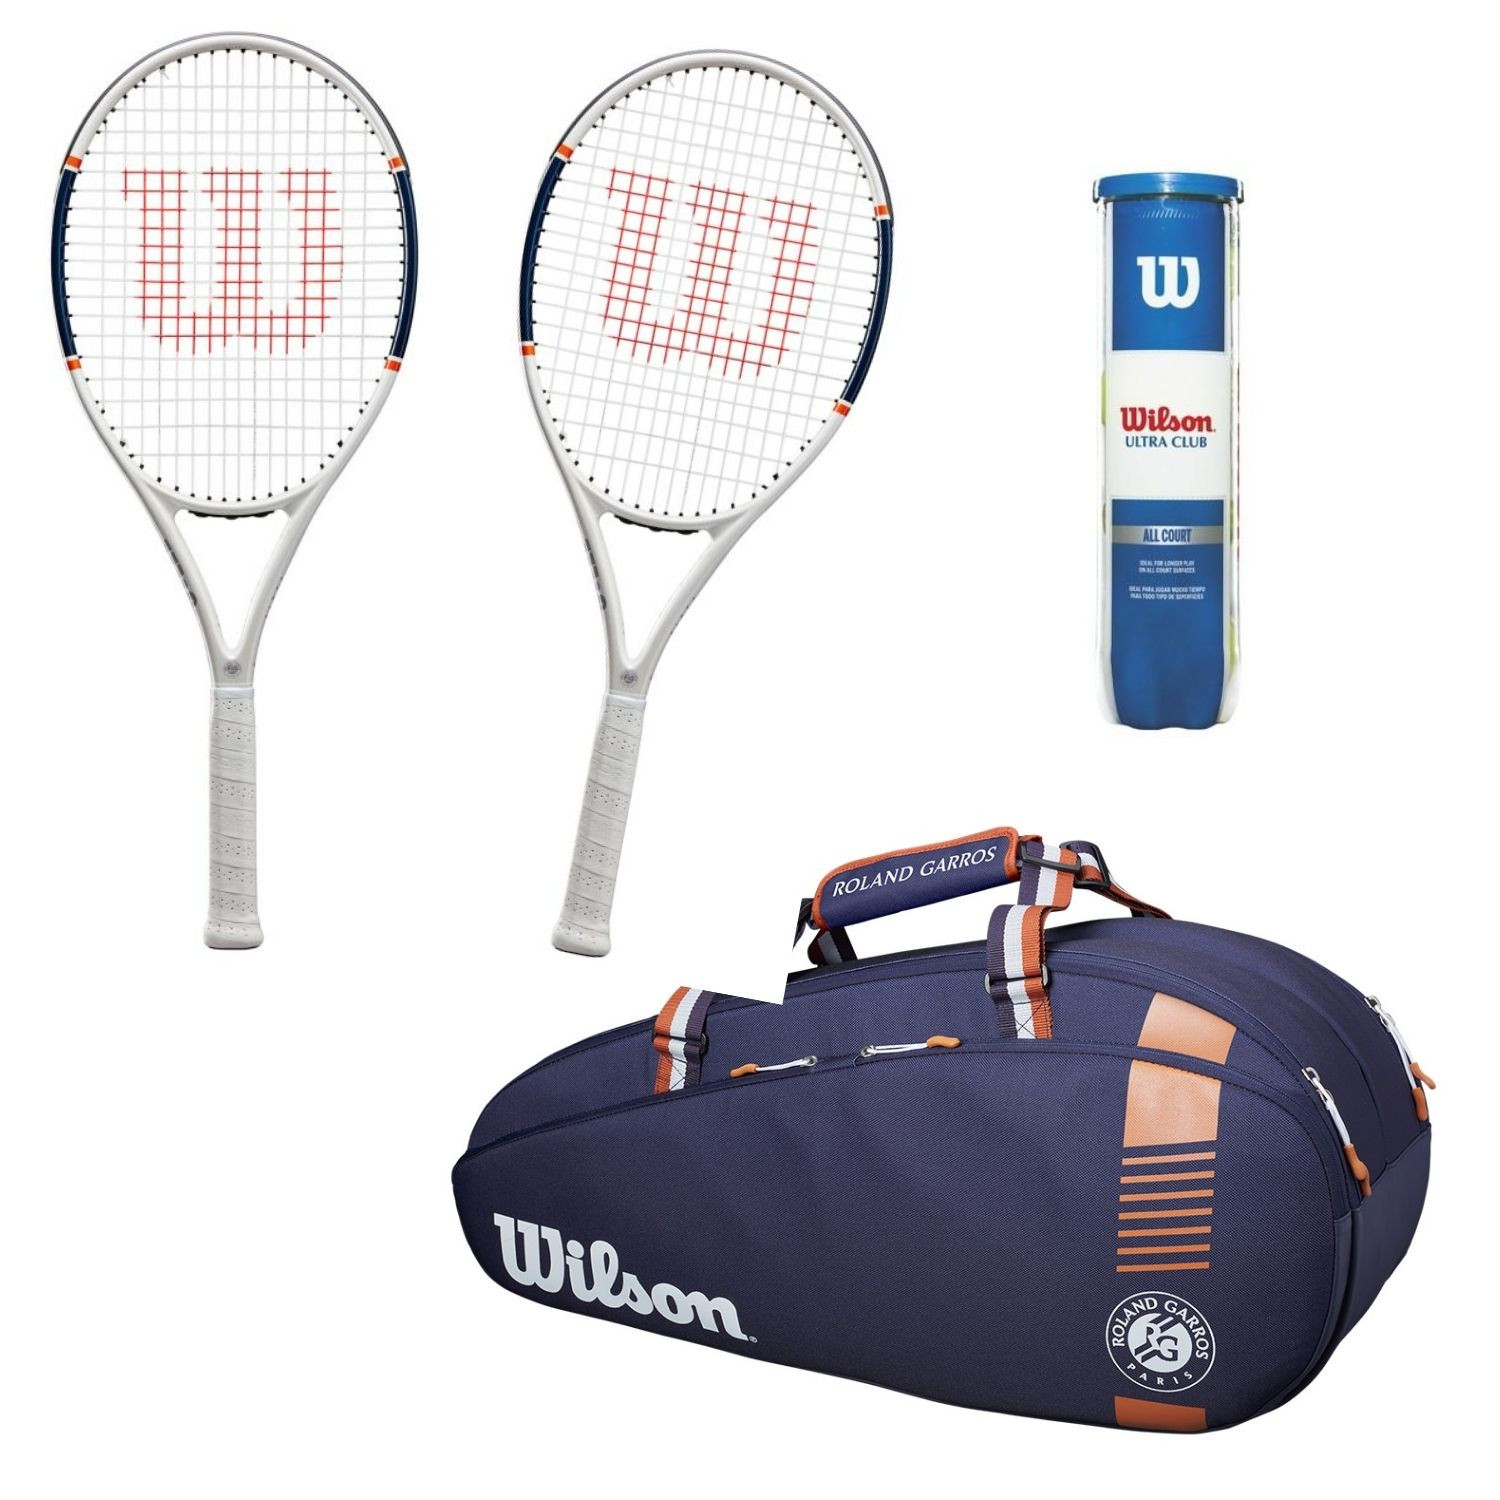 Tenisový set WILSON Roland Garros Triumph  Vak Team 6pack  Loptičky Ultra Club All Court Modrá L2